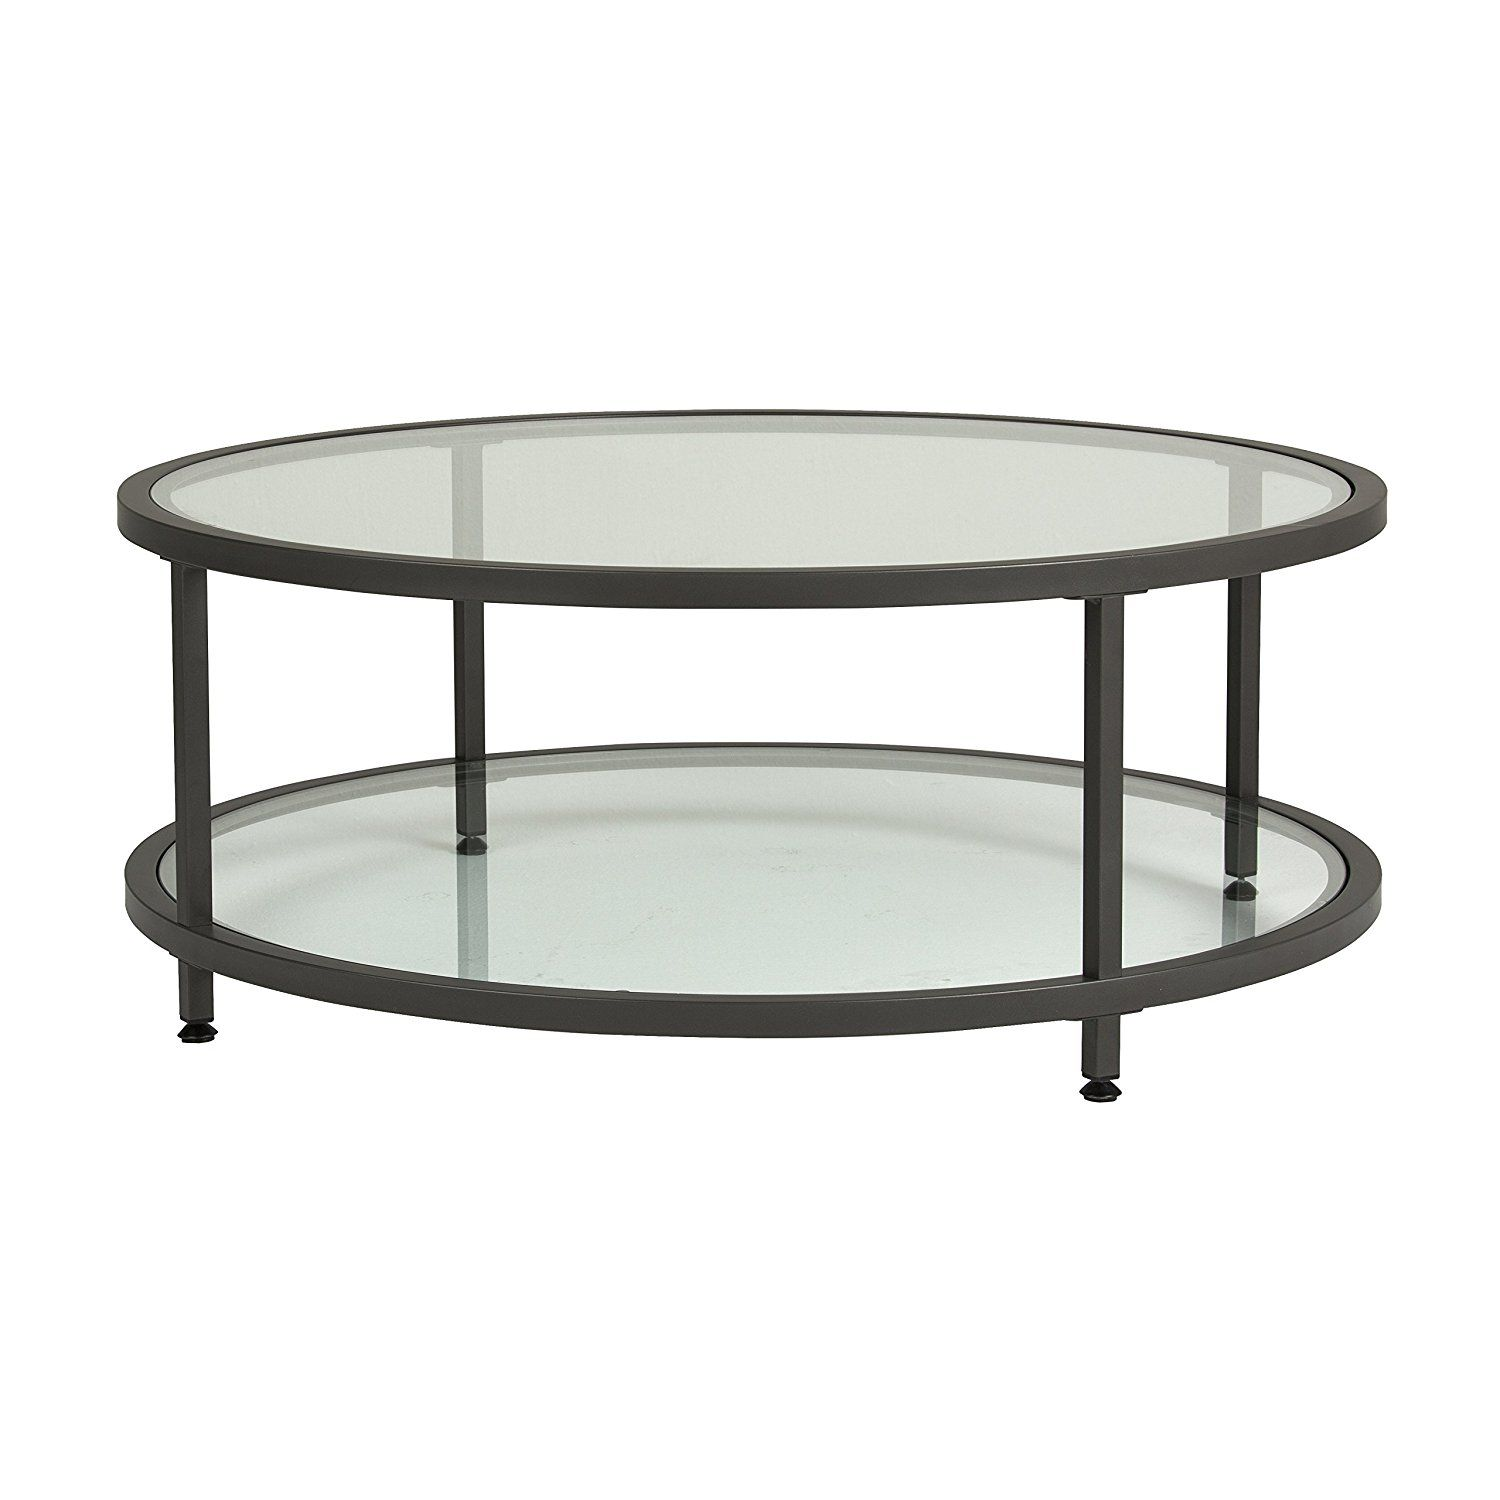 Amazon Com Studio Designs Home 71003 0 Camber Round Coffee Table In Pewter With Clear Glass Kitchen Coffee Table Coffee Table Metal Frame Round Coffee Table [ 1500 x 1500 Pixel ]